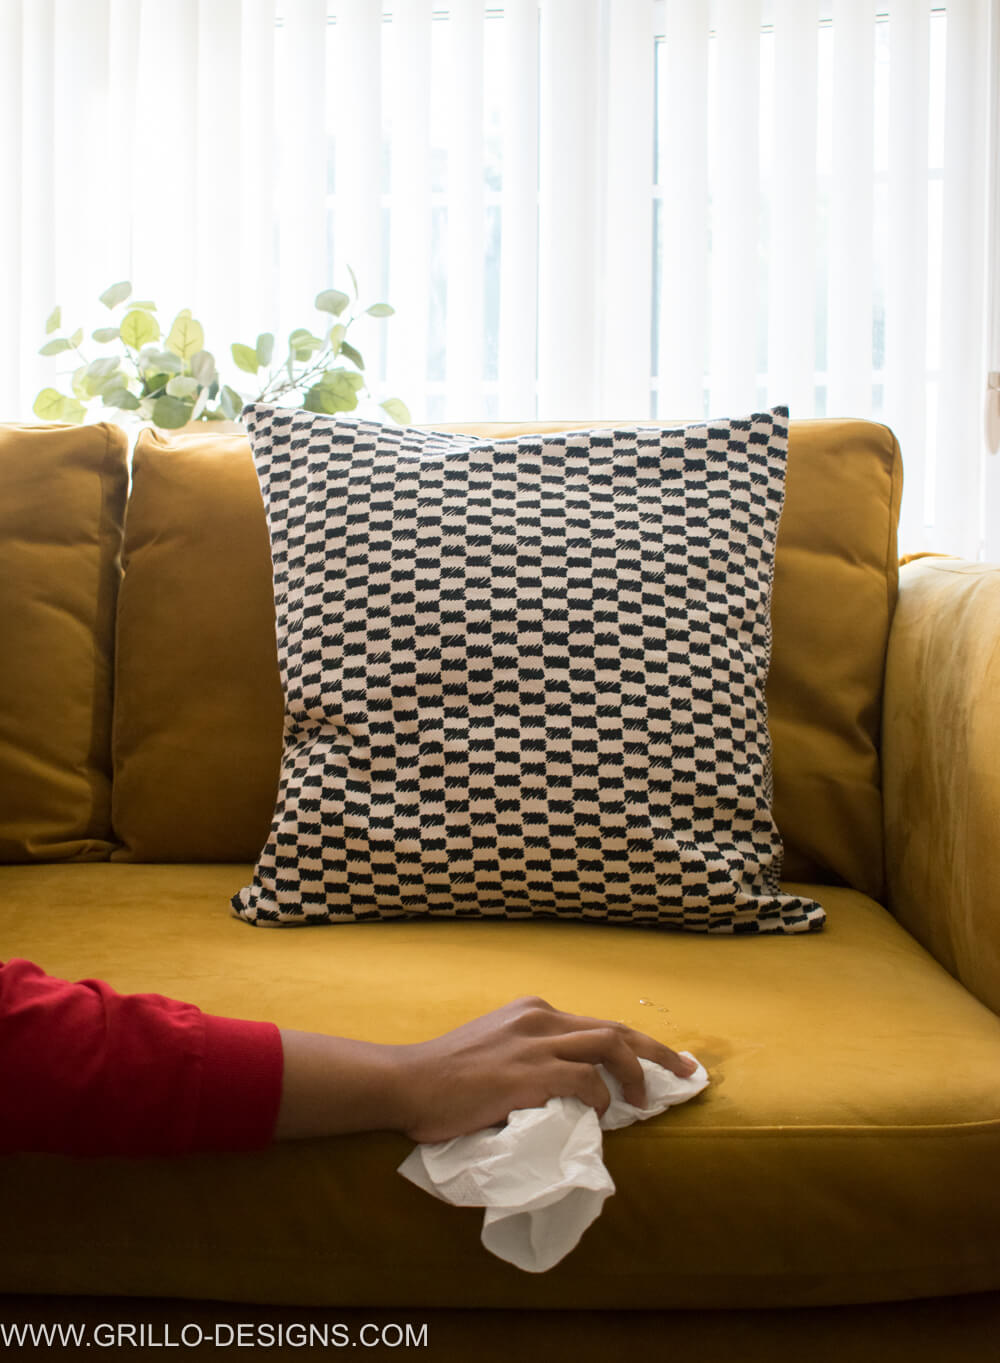 Fliegender Teppich Terraria Velvet Sofa Hard To Clean How To Care For A Microfiber Sofa Or